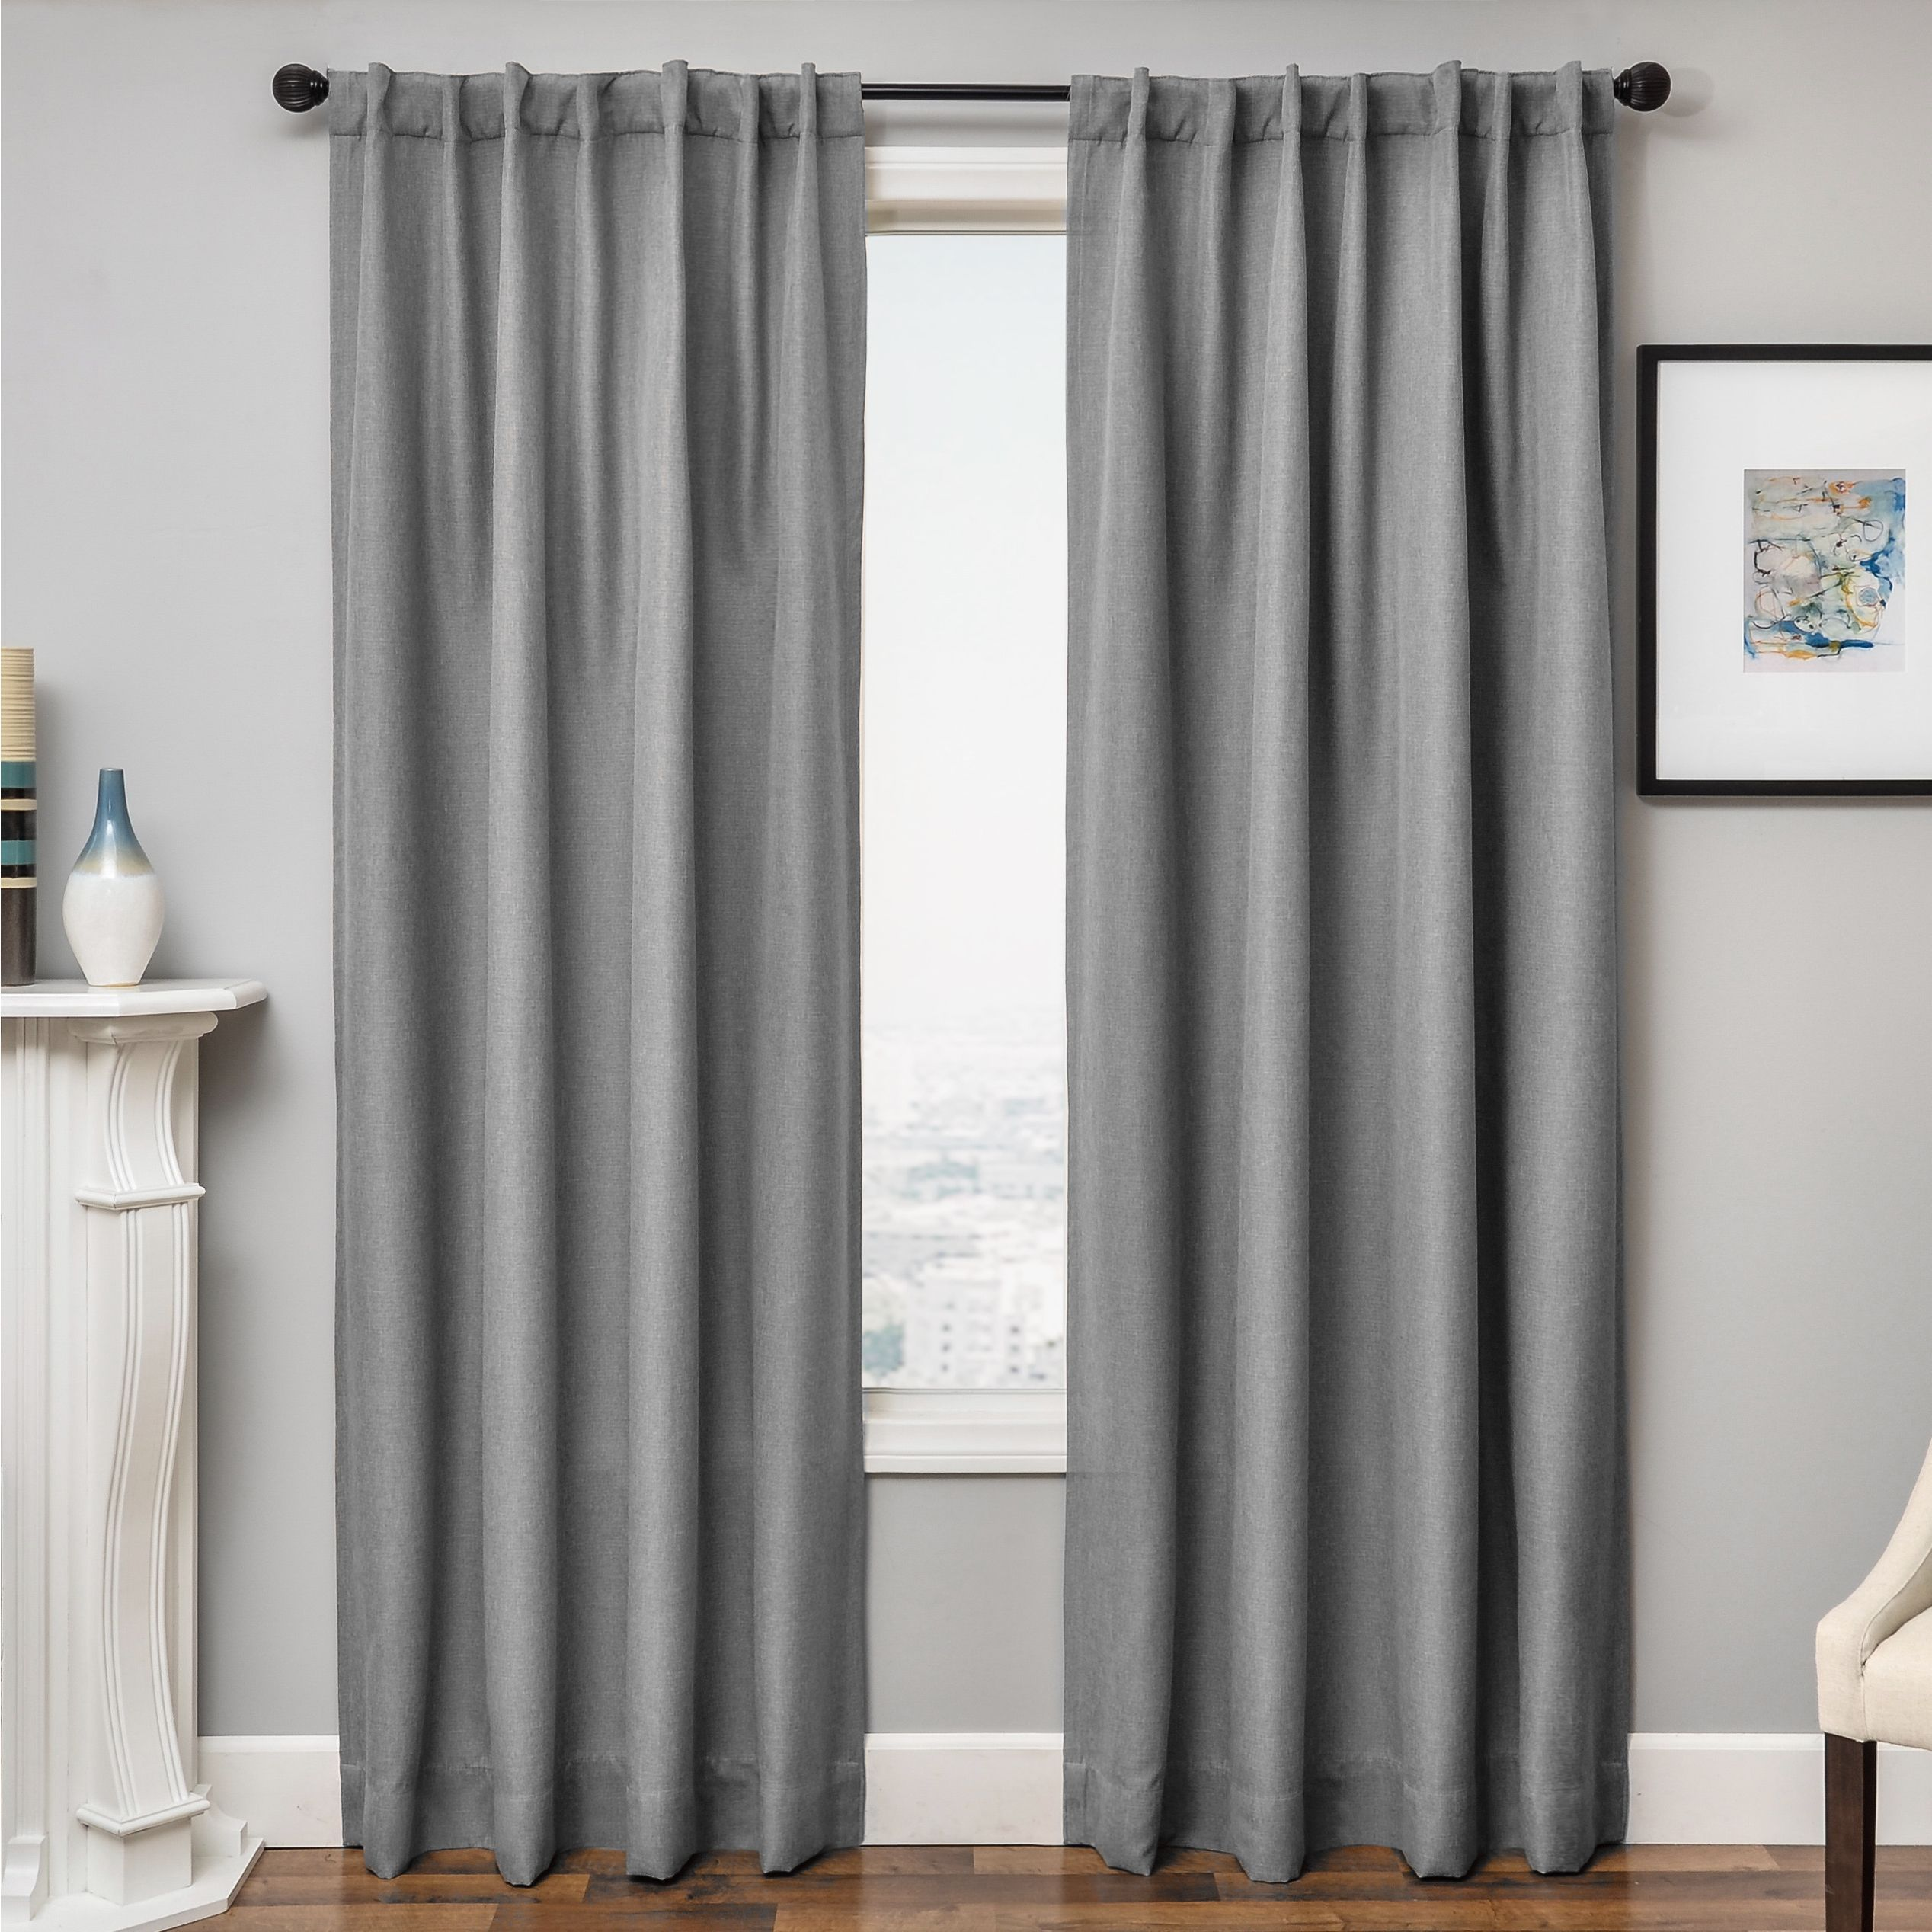 wayfair campanella treatments linen panel sateen thermal curtains reviews grommet orren curtain blackout ellis pdx window single solid